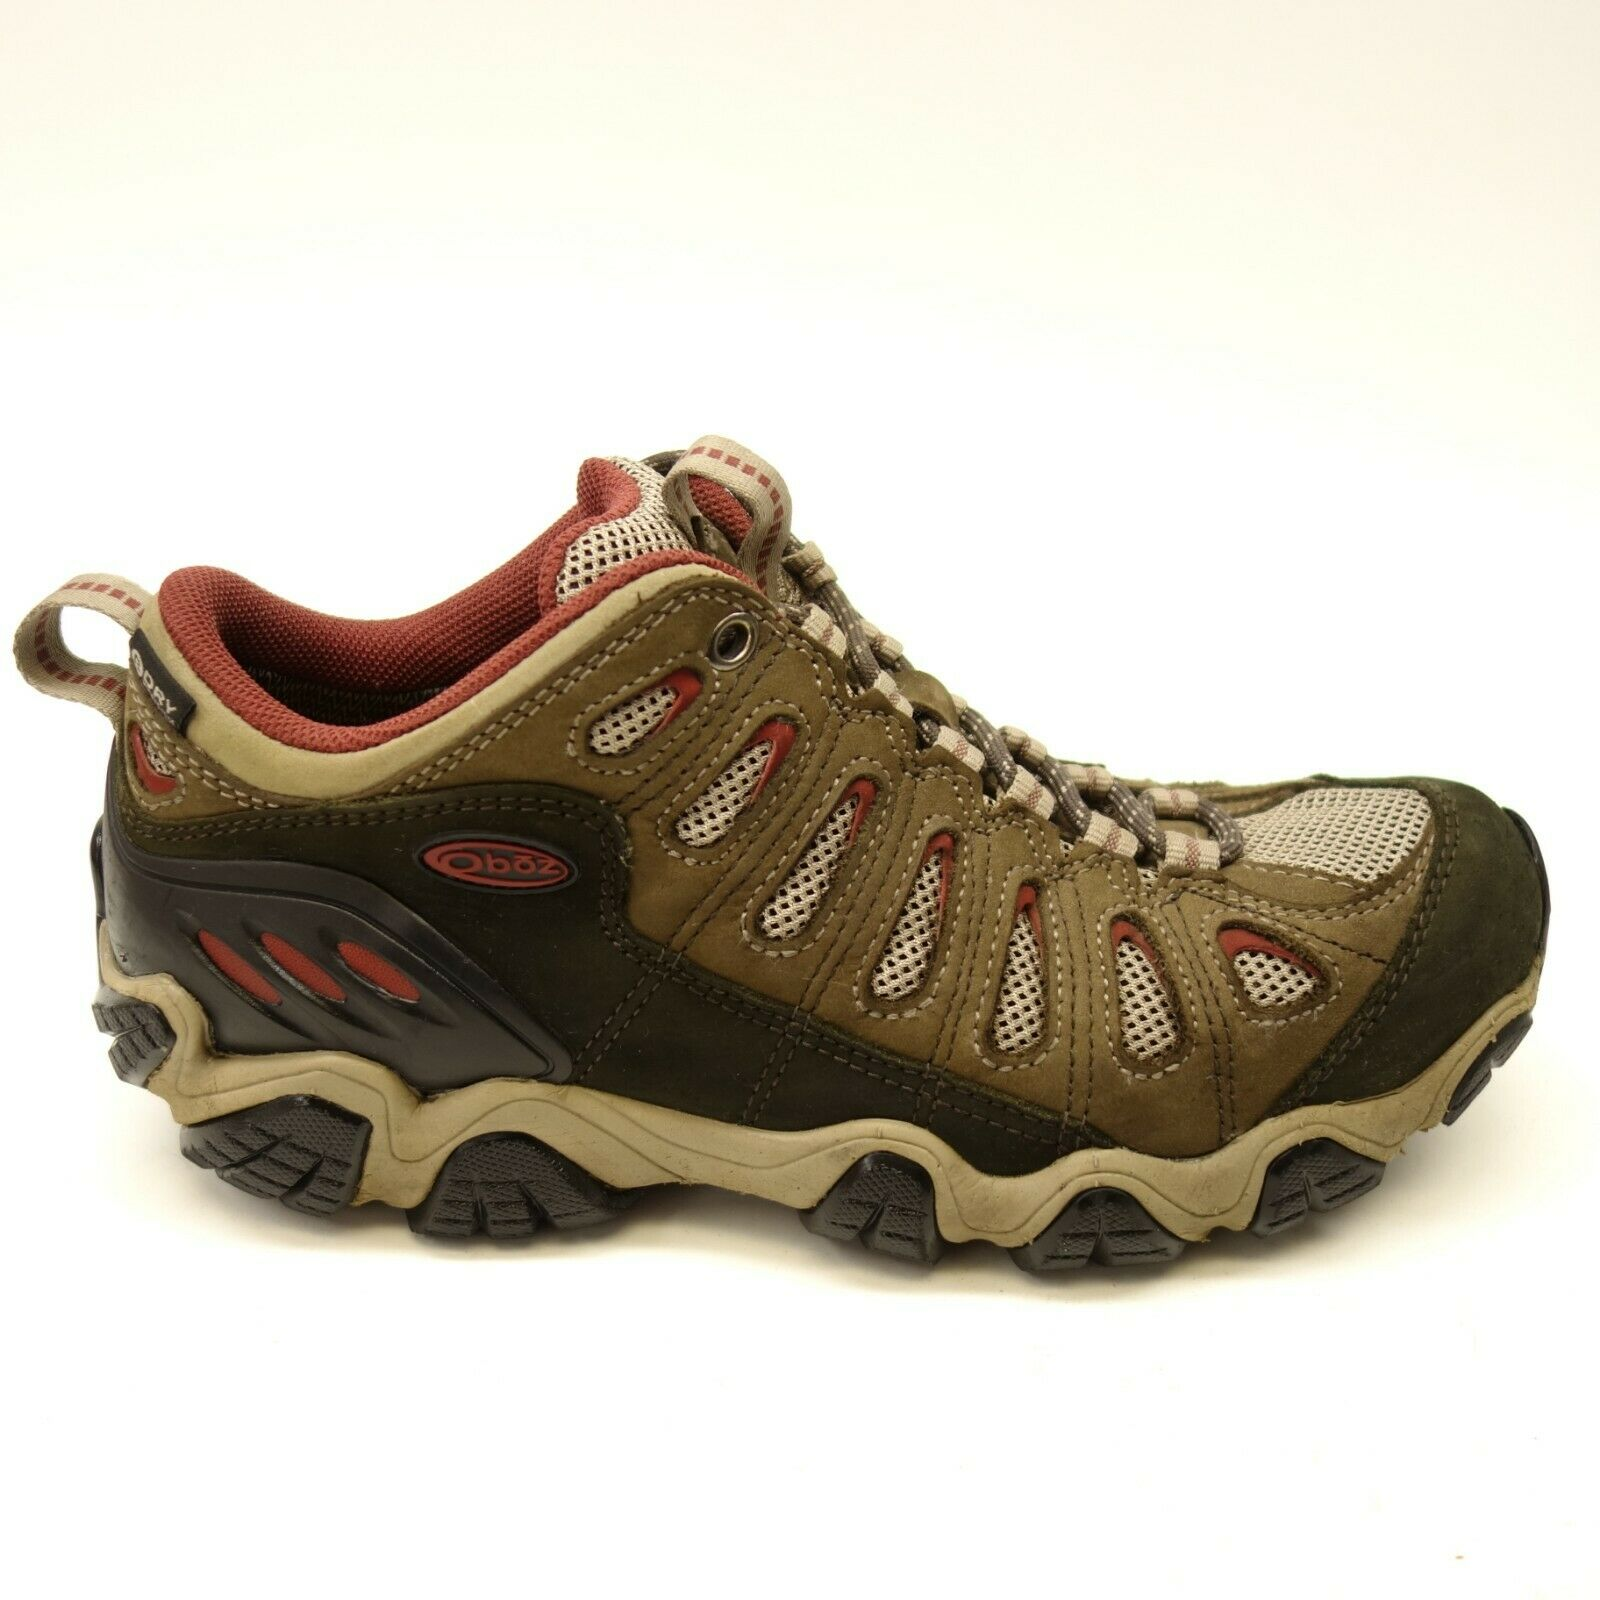 d249766b18 Oboz Mens Sawtooth Low BDry Support Hiking Trail shoes Size 9 Athletic  Athletic nuuyhb2743-Athletic Shoes